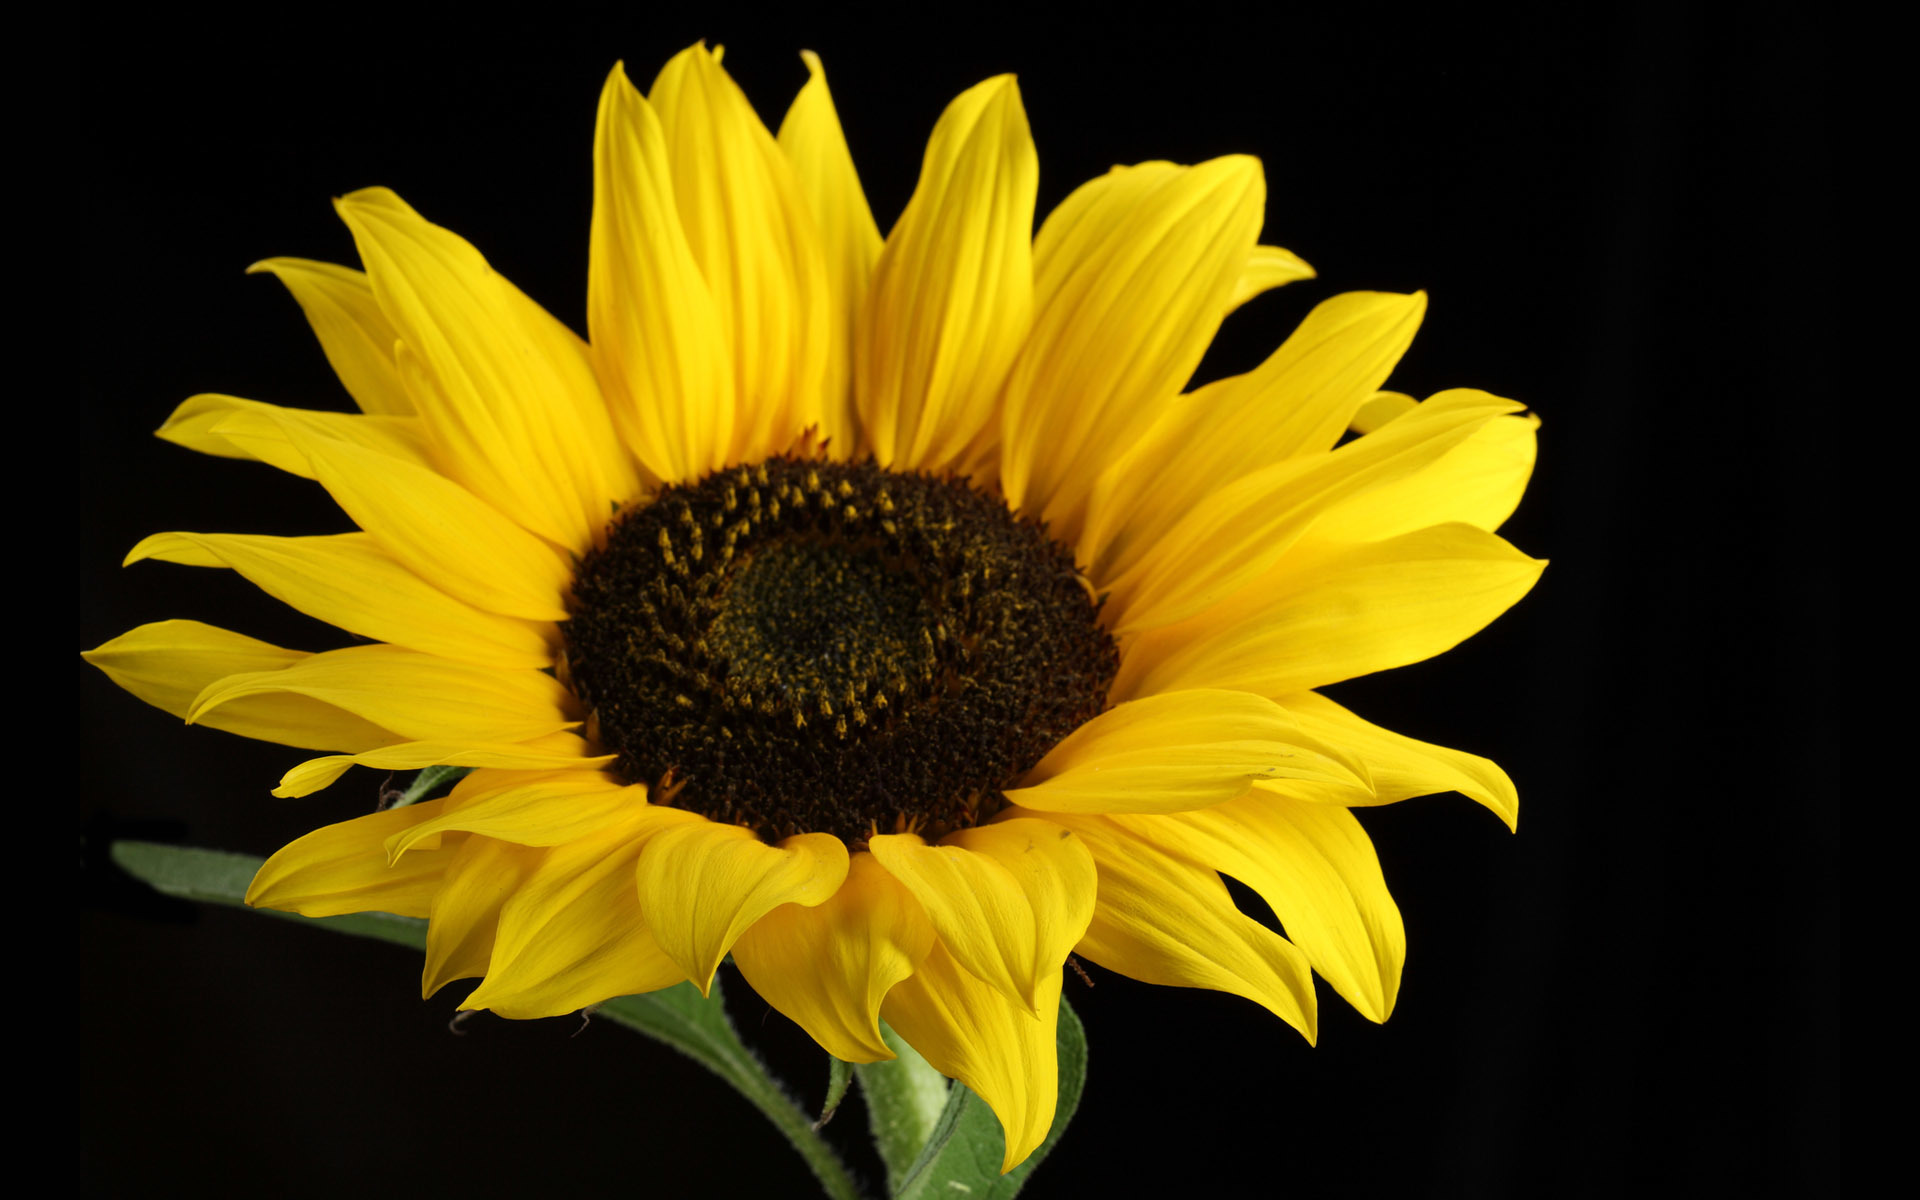 Flowers Plants Sunflowers sunflower HD Wallpaper